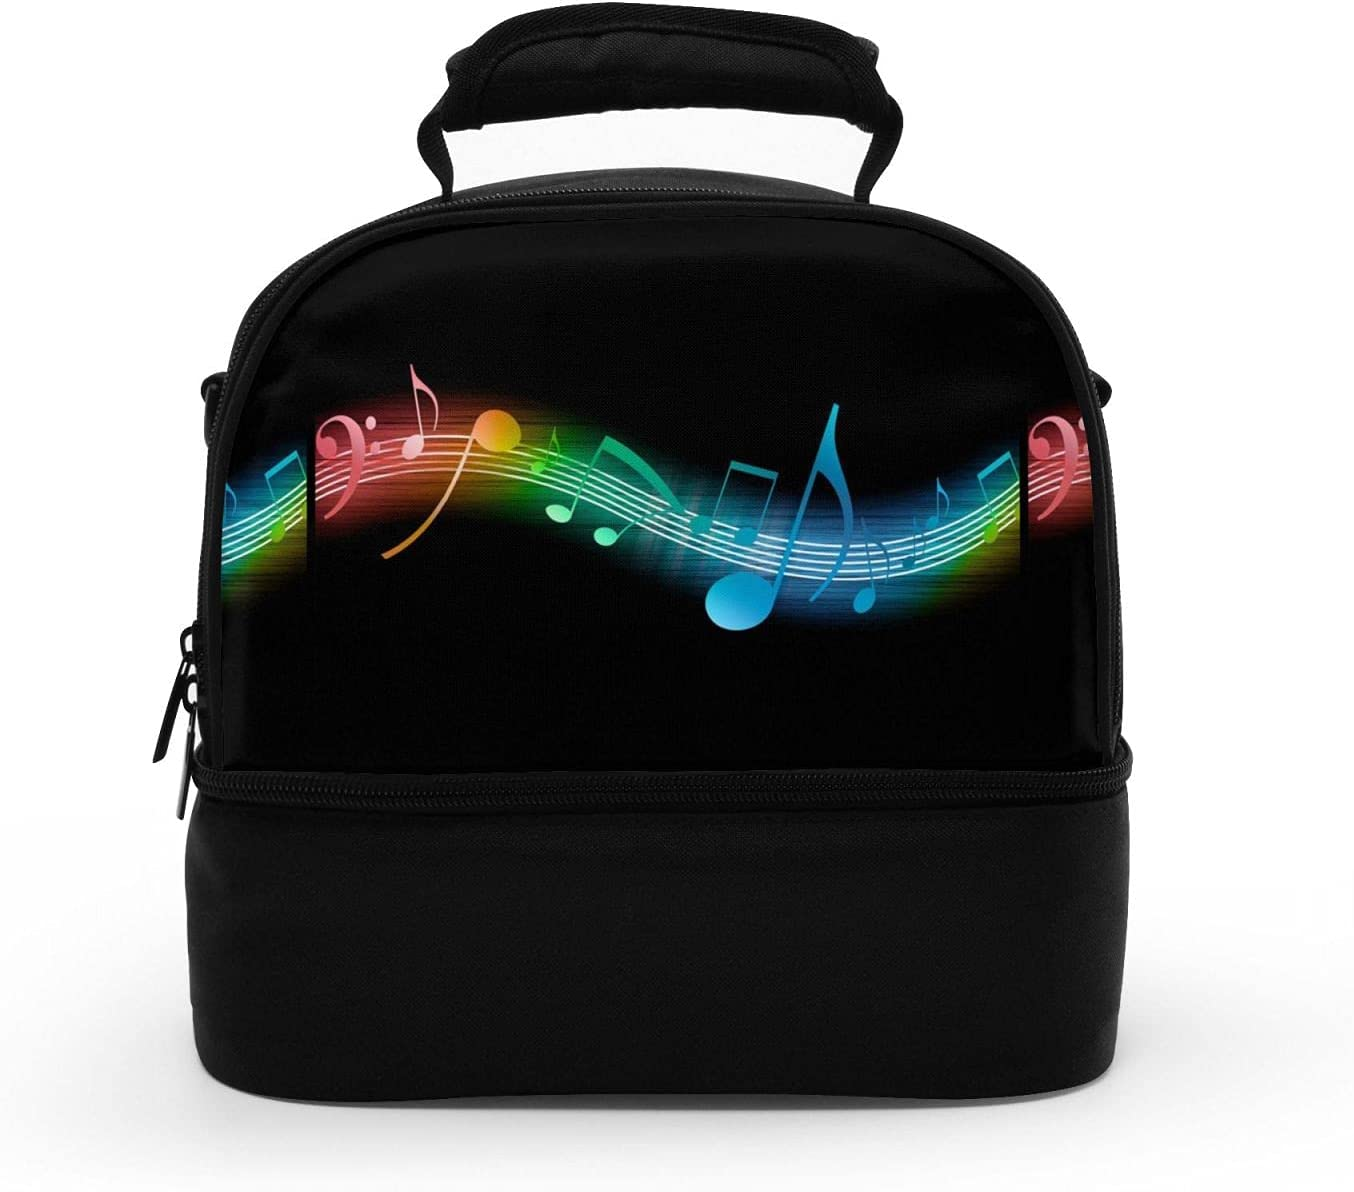 Music Arlington Mall discount Note Double Decker Thermal Lunch Reusable Le Bag Insulated